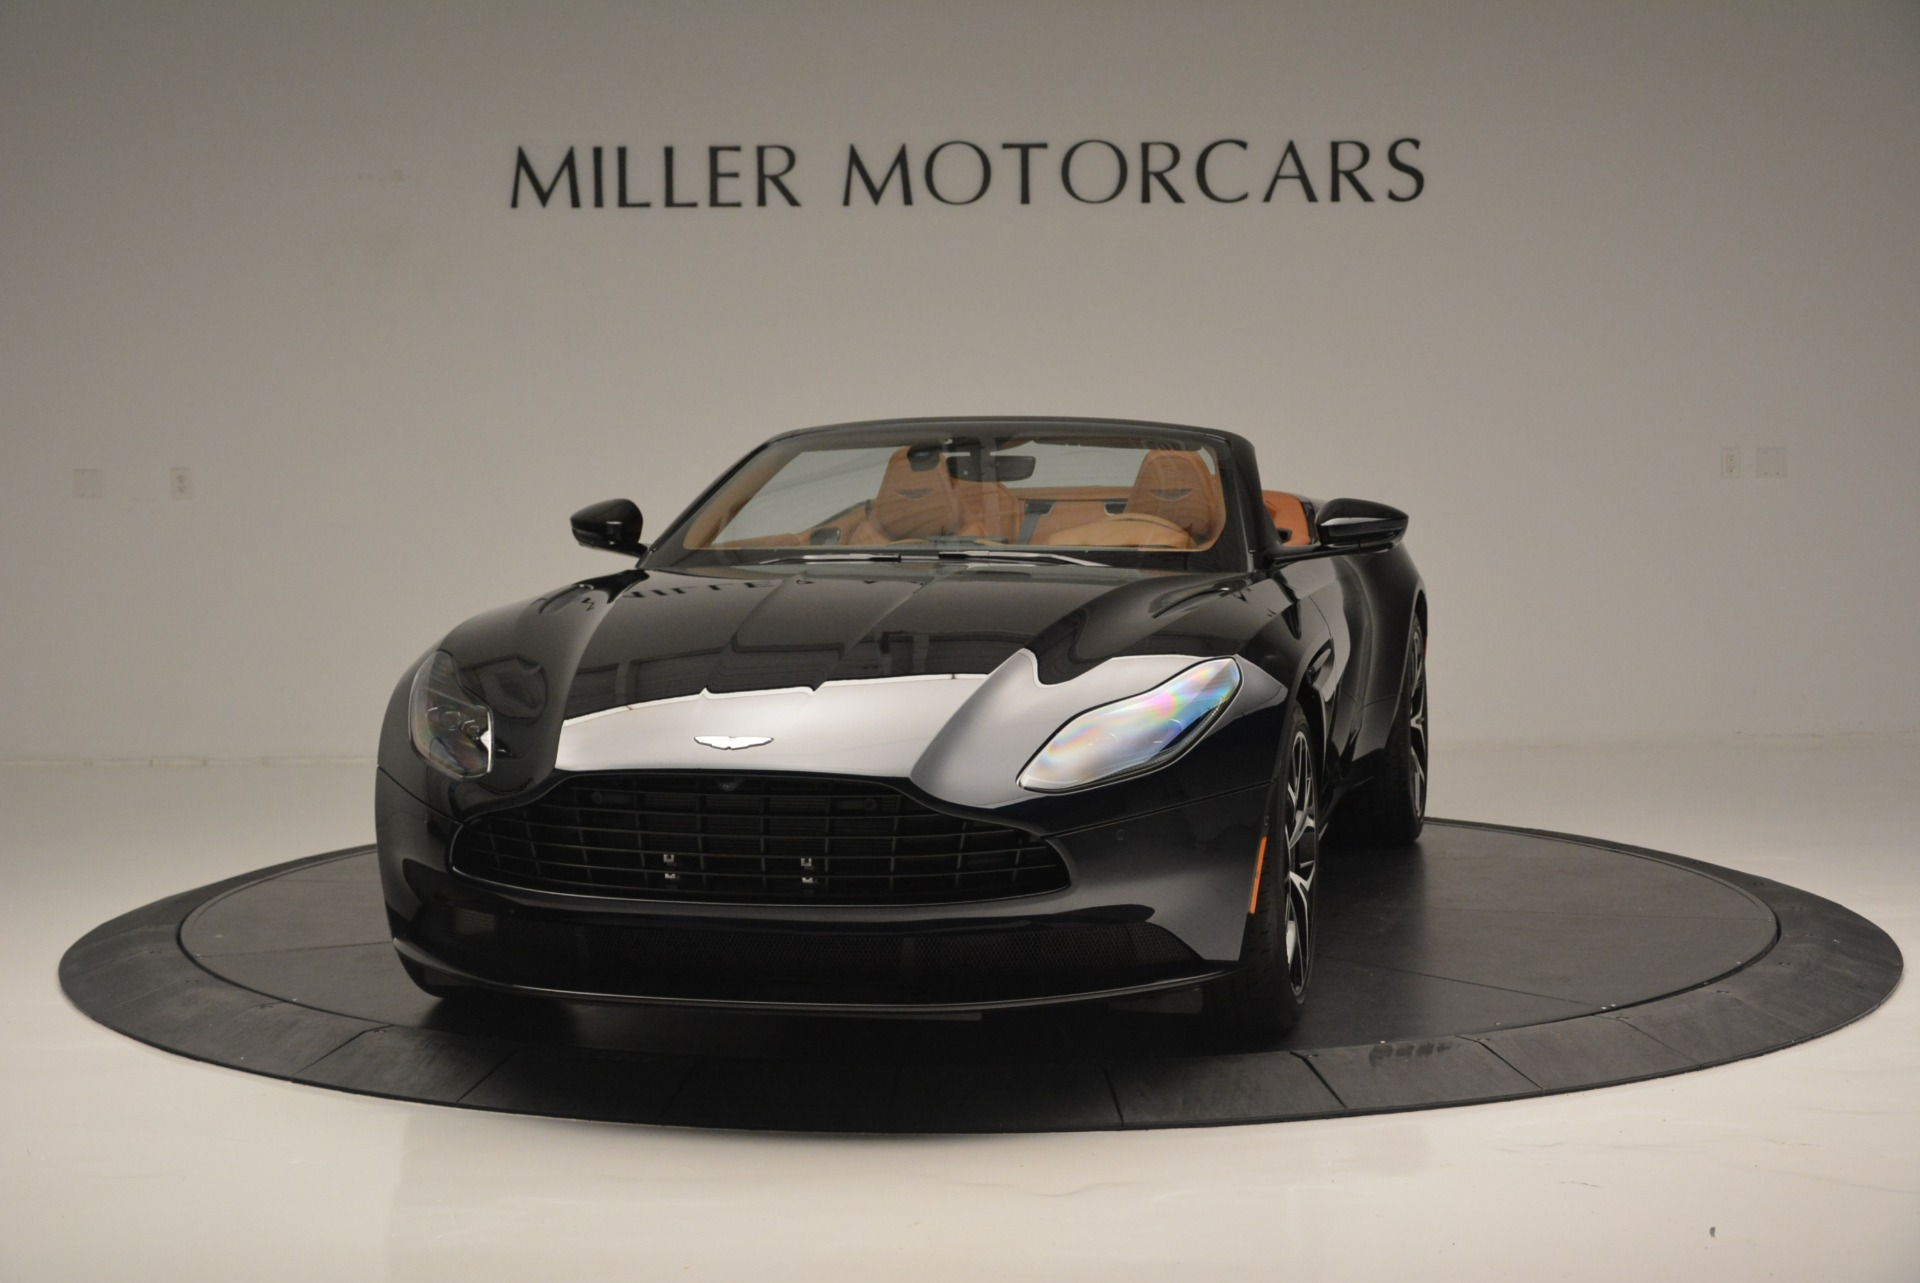 New 2019 Aston Martin DB11 Volante Volante for sale Sold at Rolls-Royce Motor Cars Greenwich in Greenwich CT 06830 1